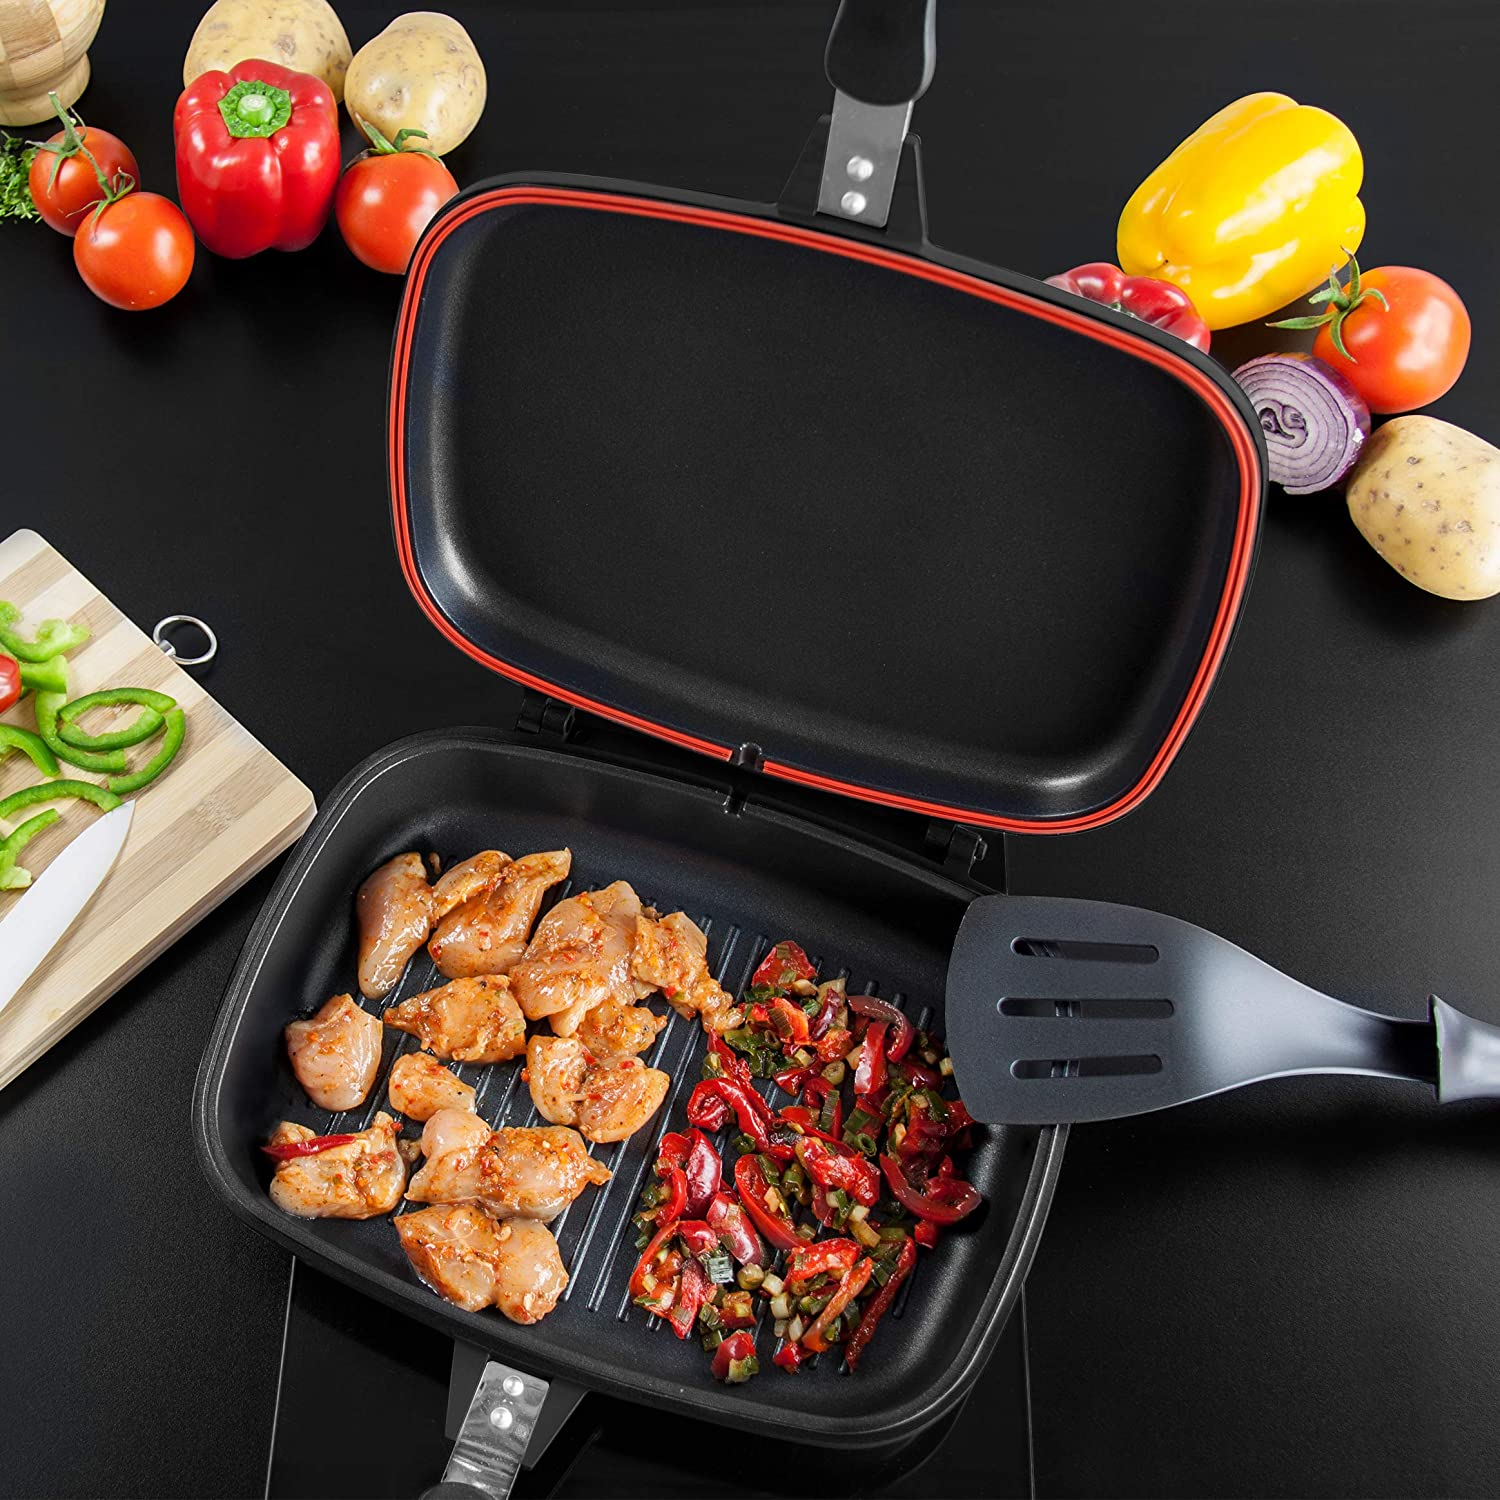 32cm Die Cast Double Grill Pan Snatcher Online Shopping South Africa